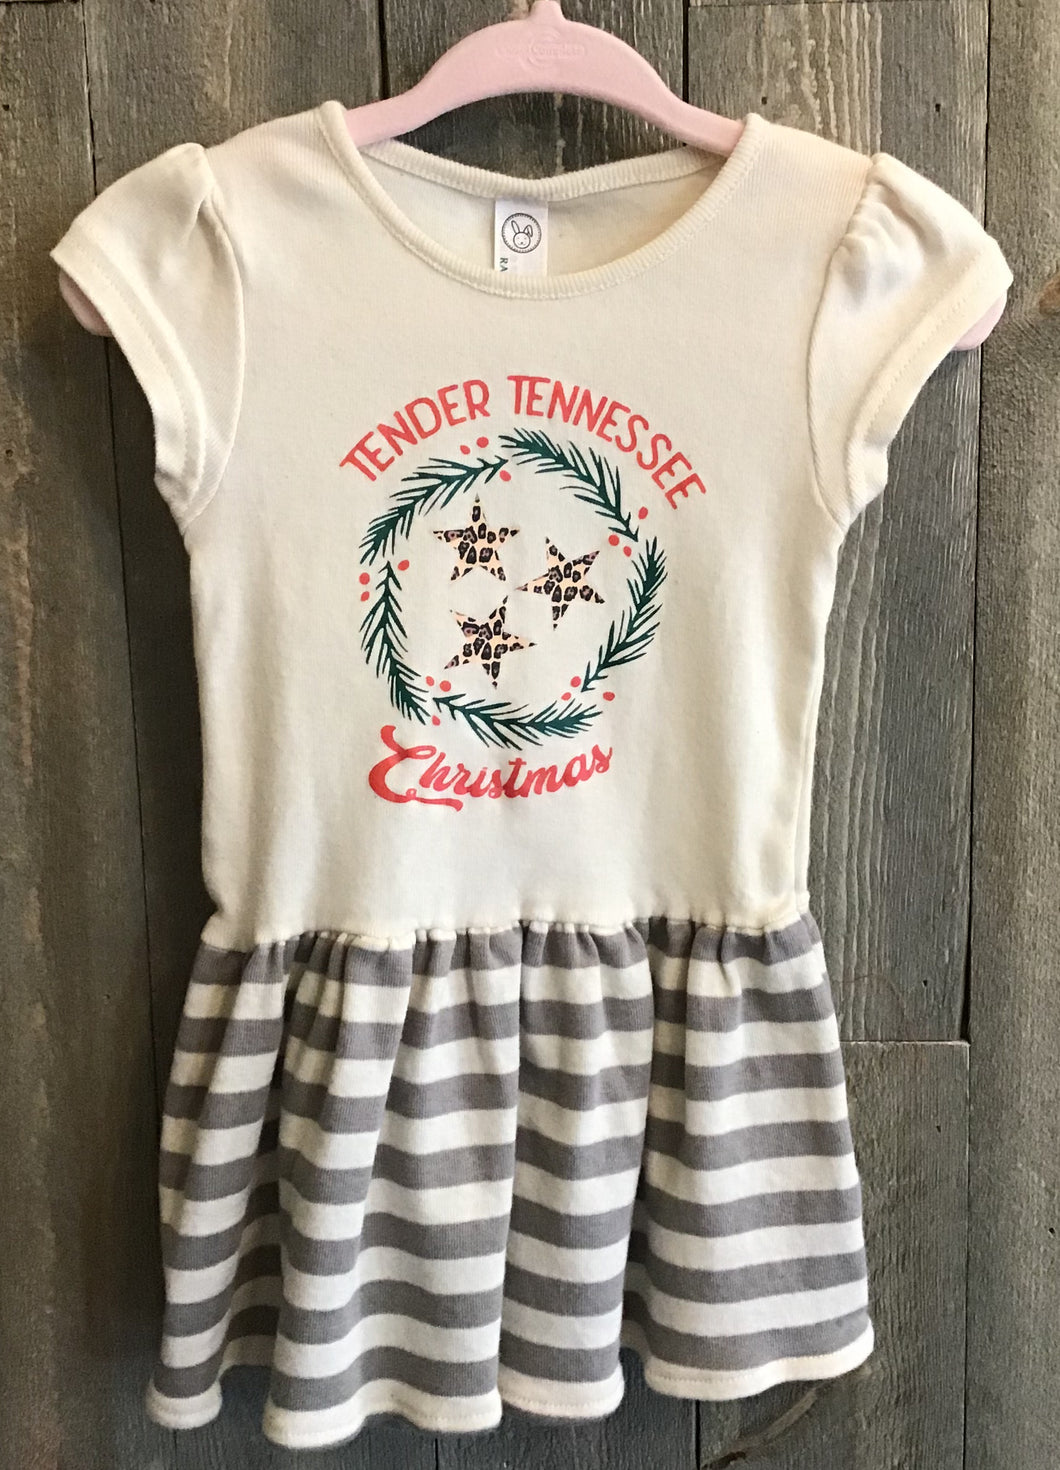 Tender Tennessee Dress